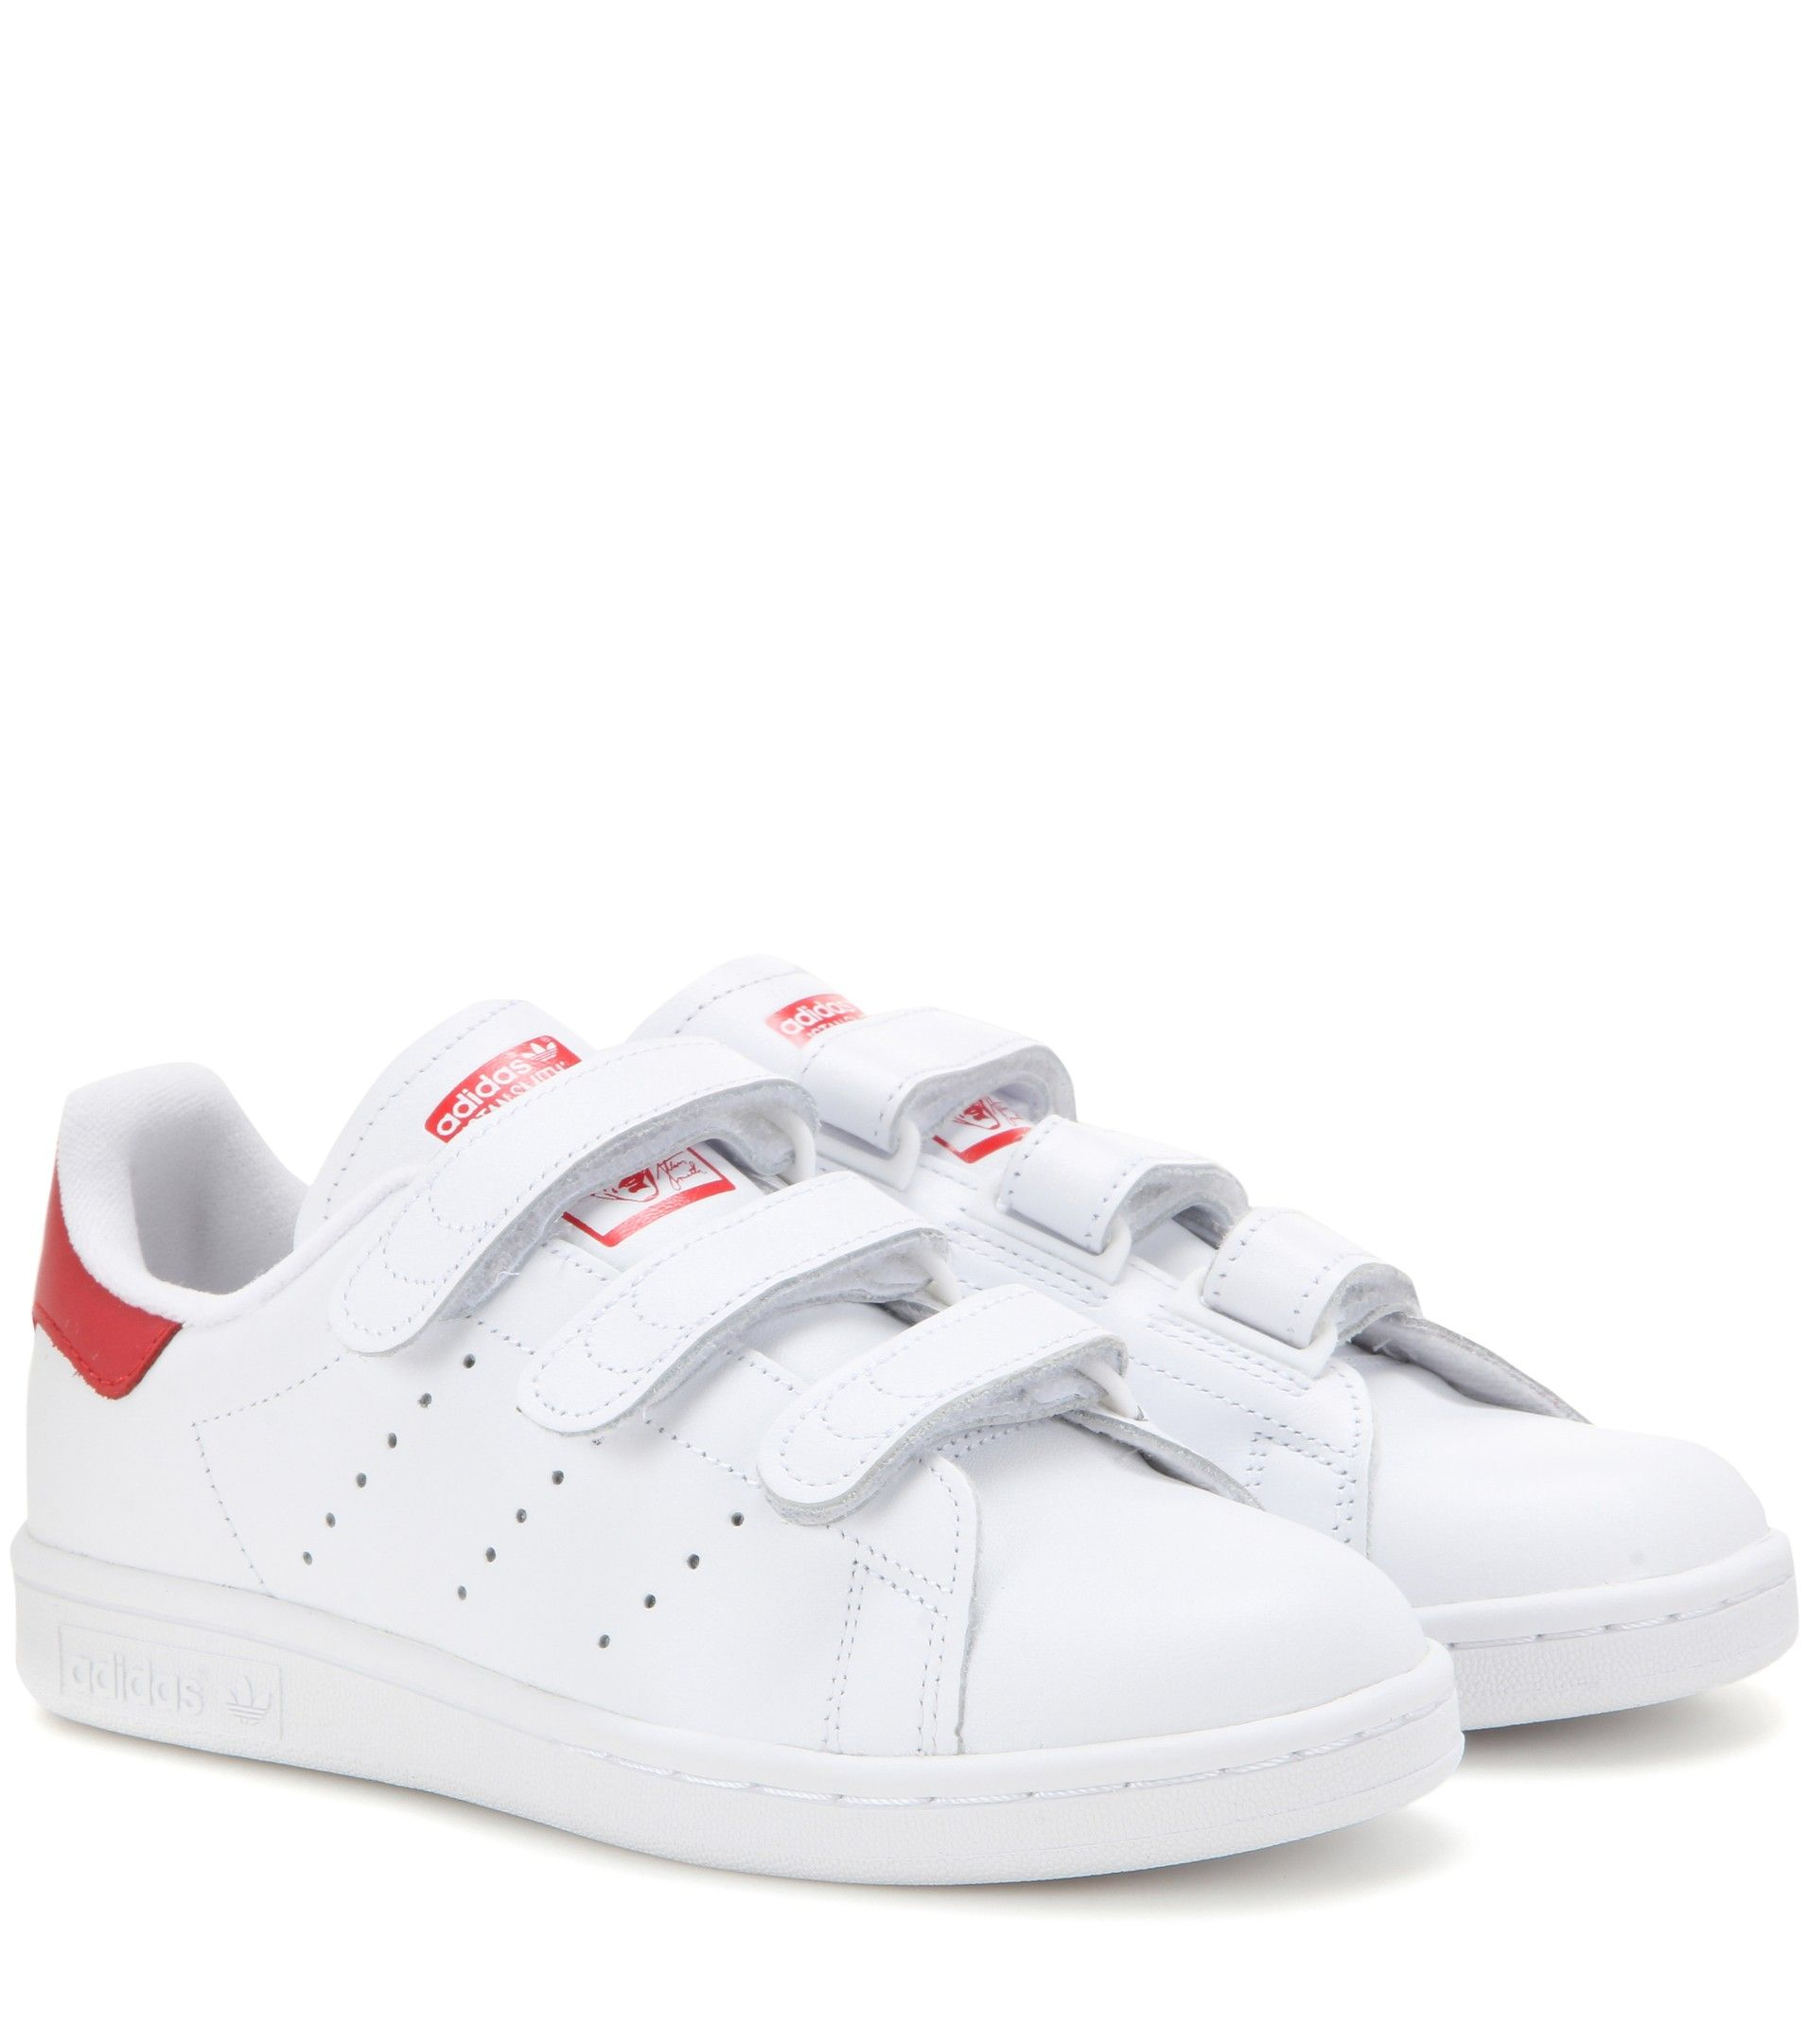 b7822c34d543df Adidas - Stan Smith leather sneakers - We love Adidas s Stan Smith  sneakers, updated with smooth white leather with red accents for a modern  yet minimalist ...